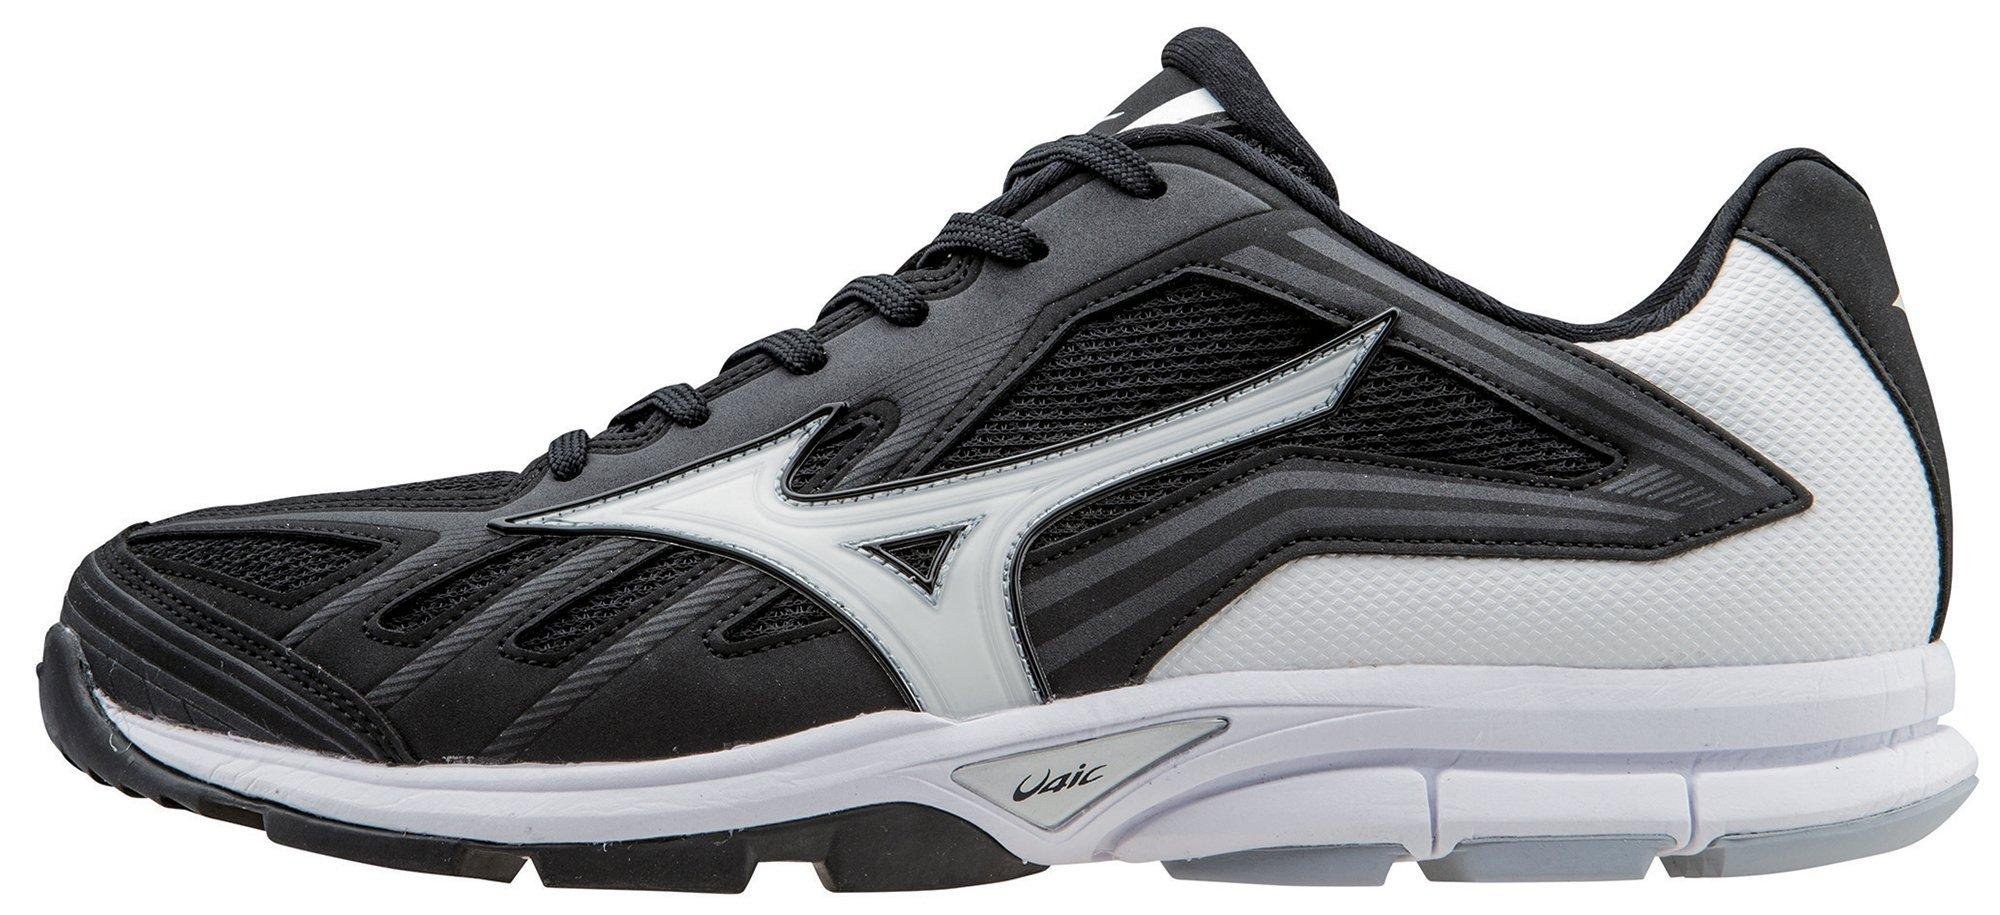 Mizuno Men's Players Trainer, Black/White, 13 M US by Mizuno